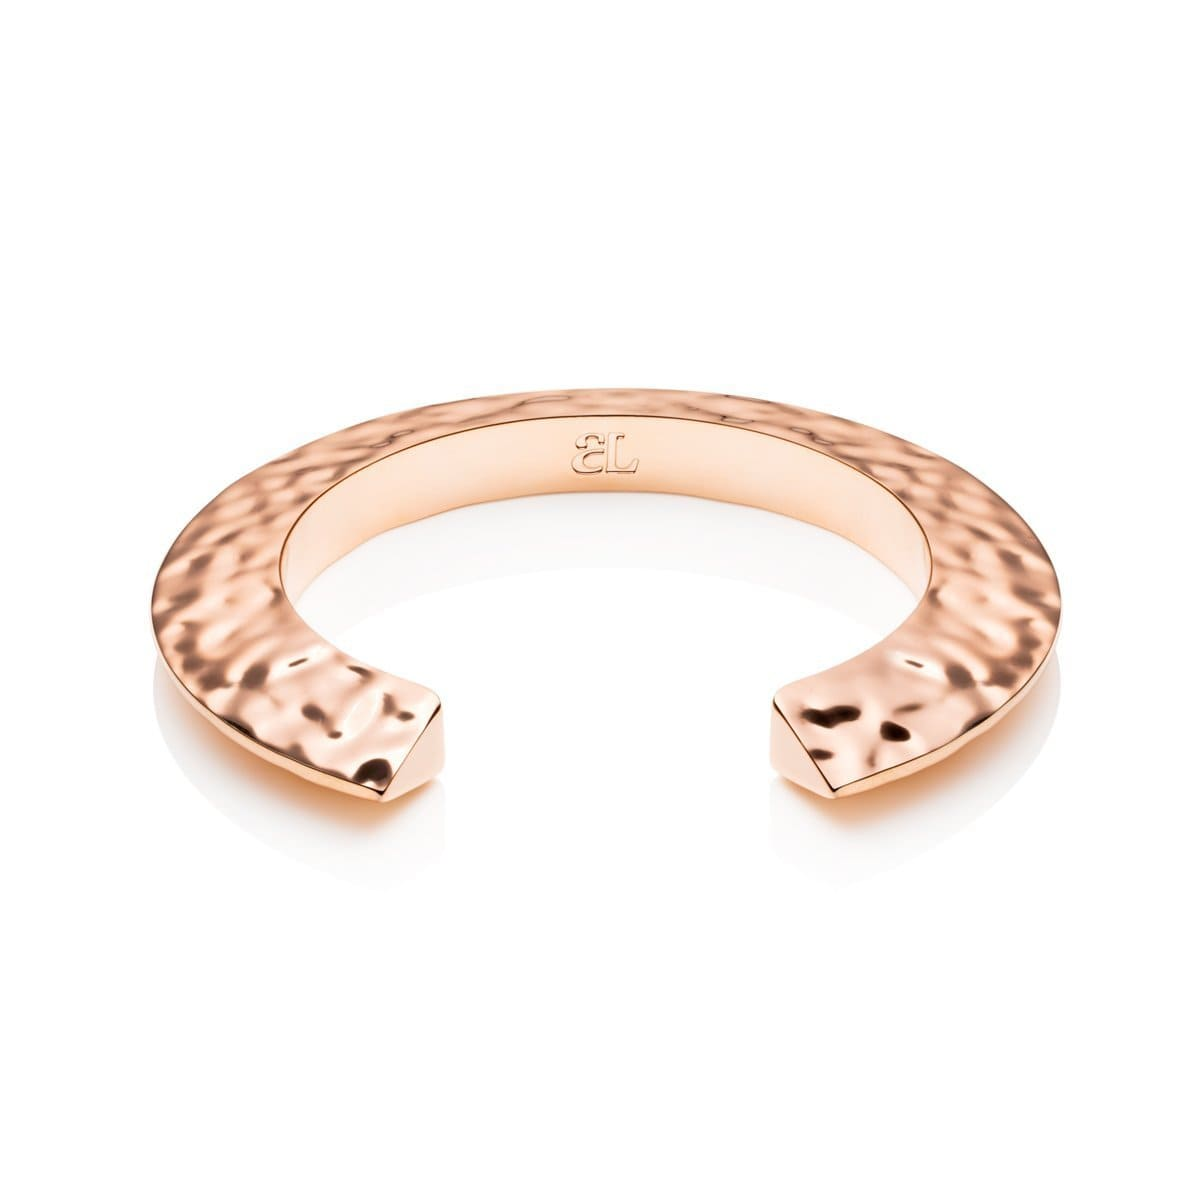 Hvar Hammered Bangle (Rose Gold)